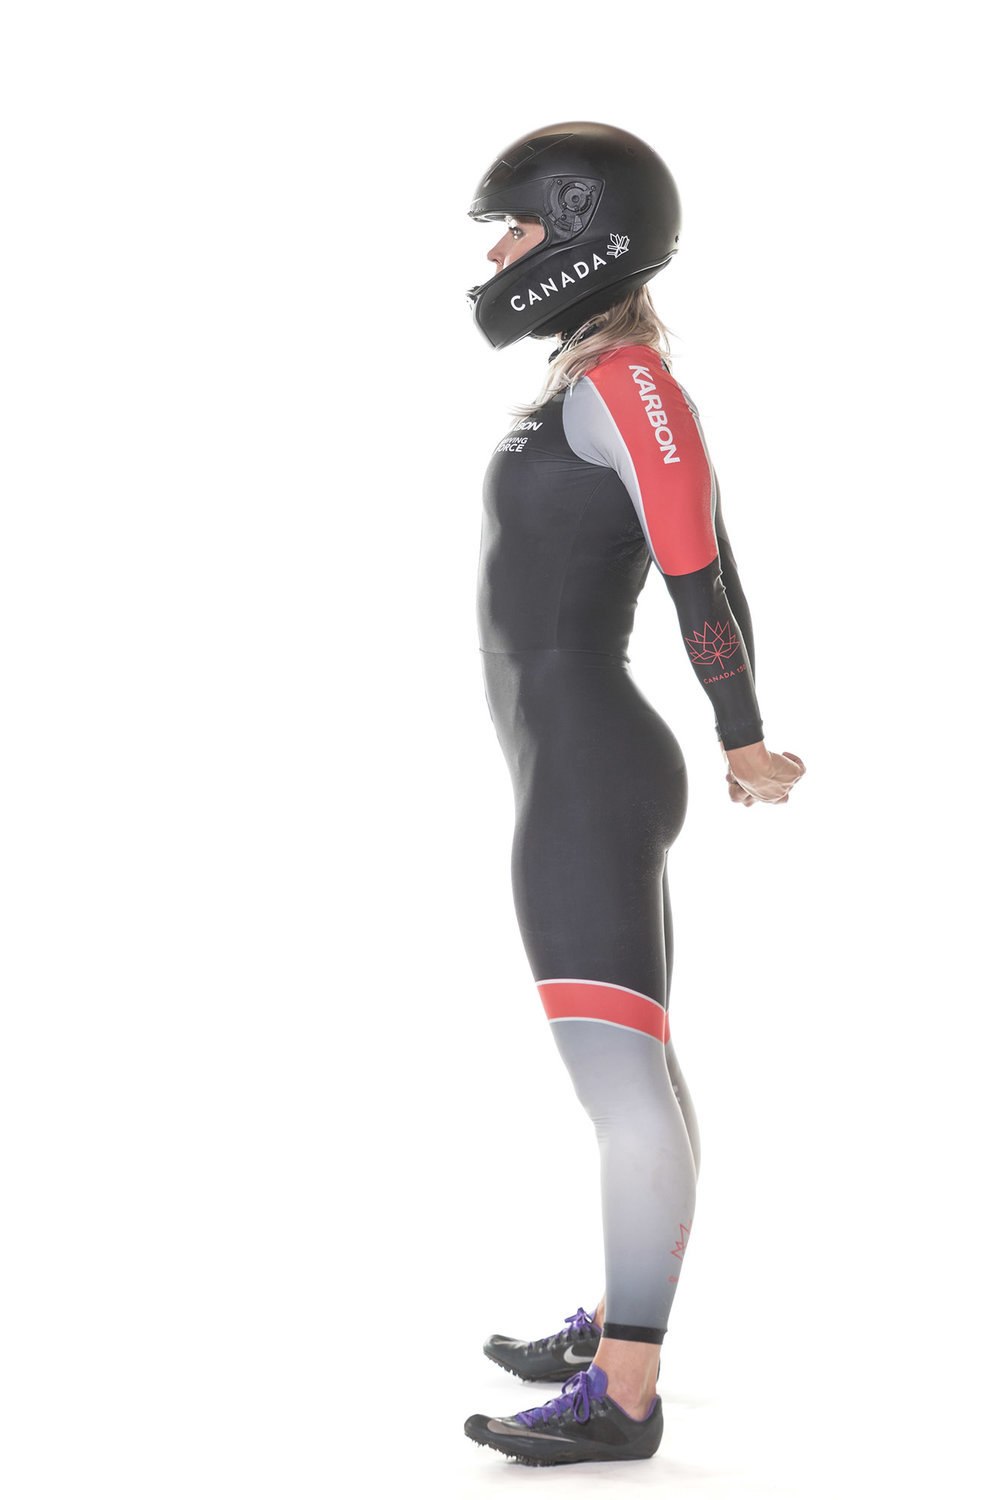 In her speed suit and spikes